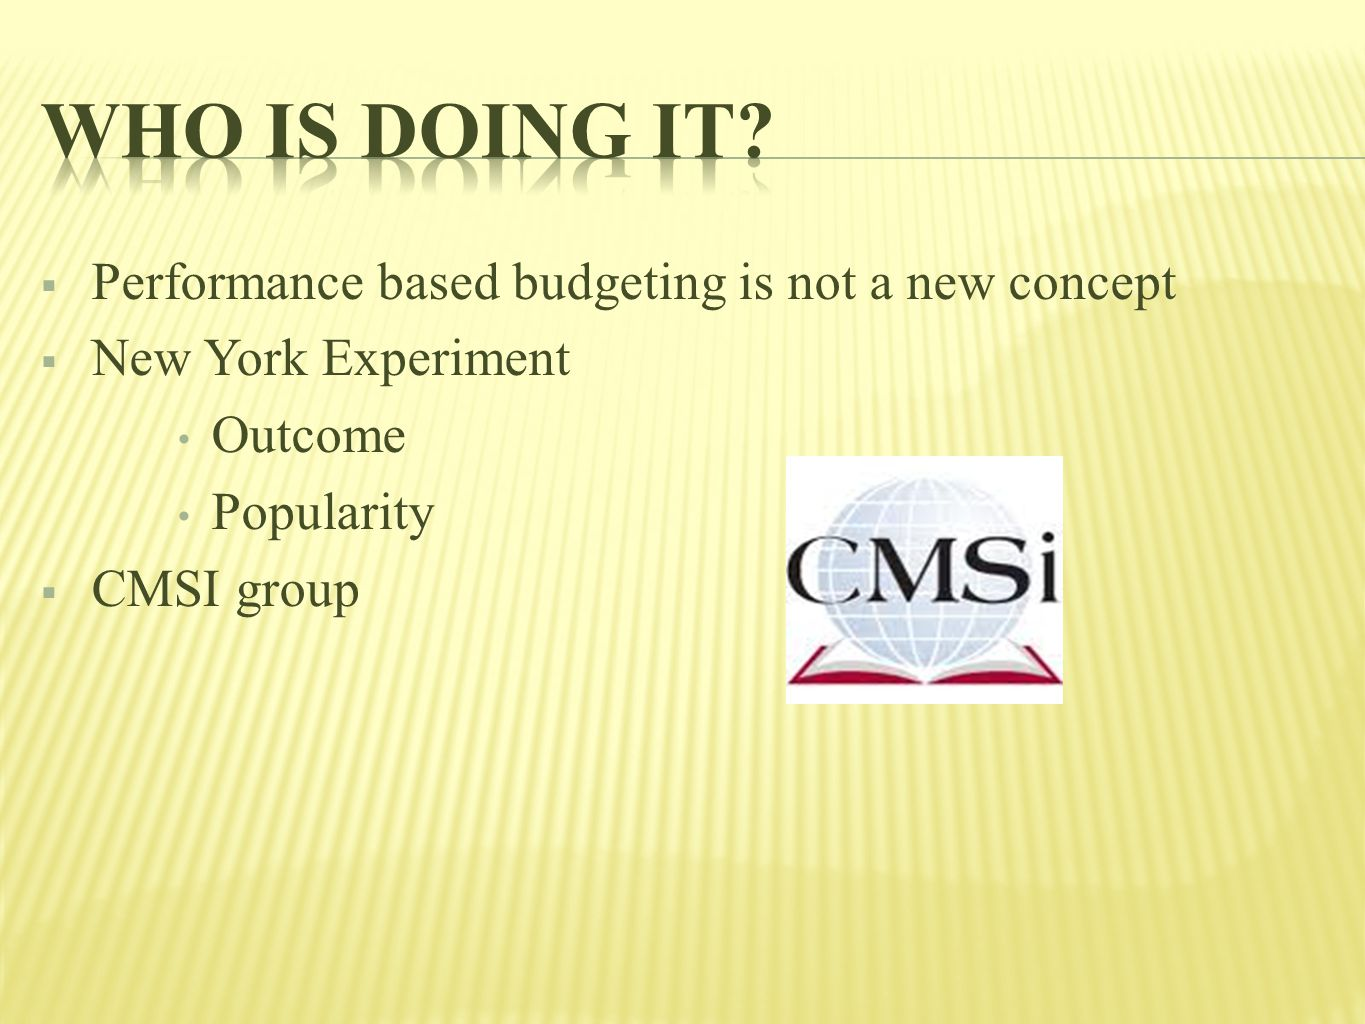  Performance based budgeting is not a new concept  New York Experiment Outcome Popularity  CMSI group